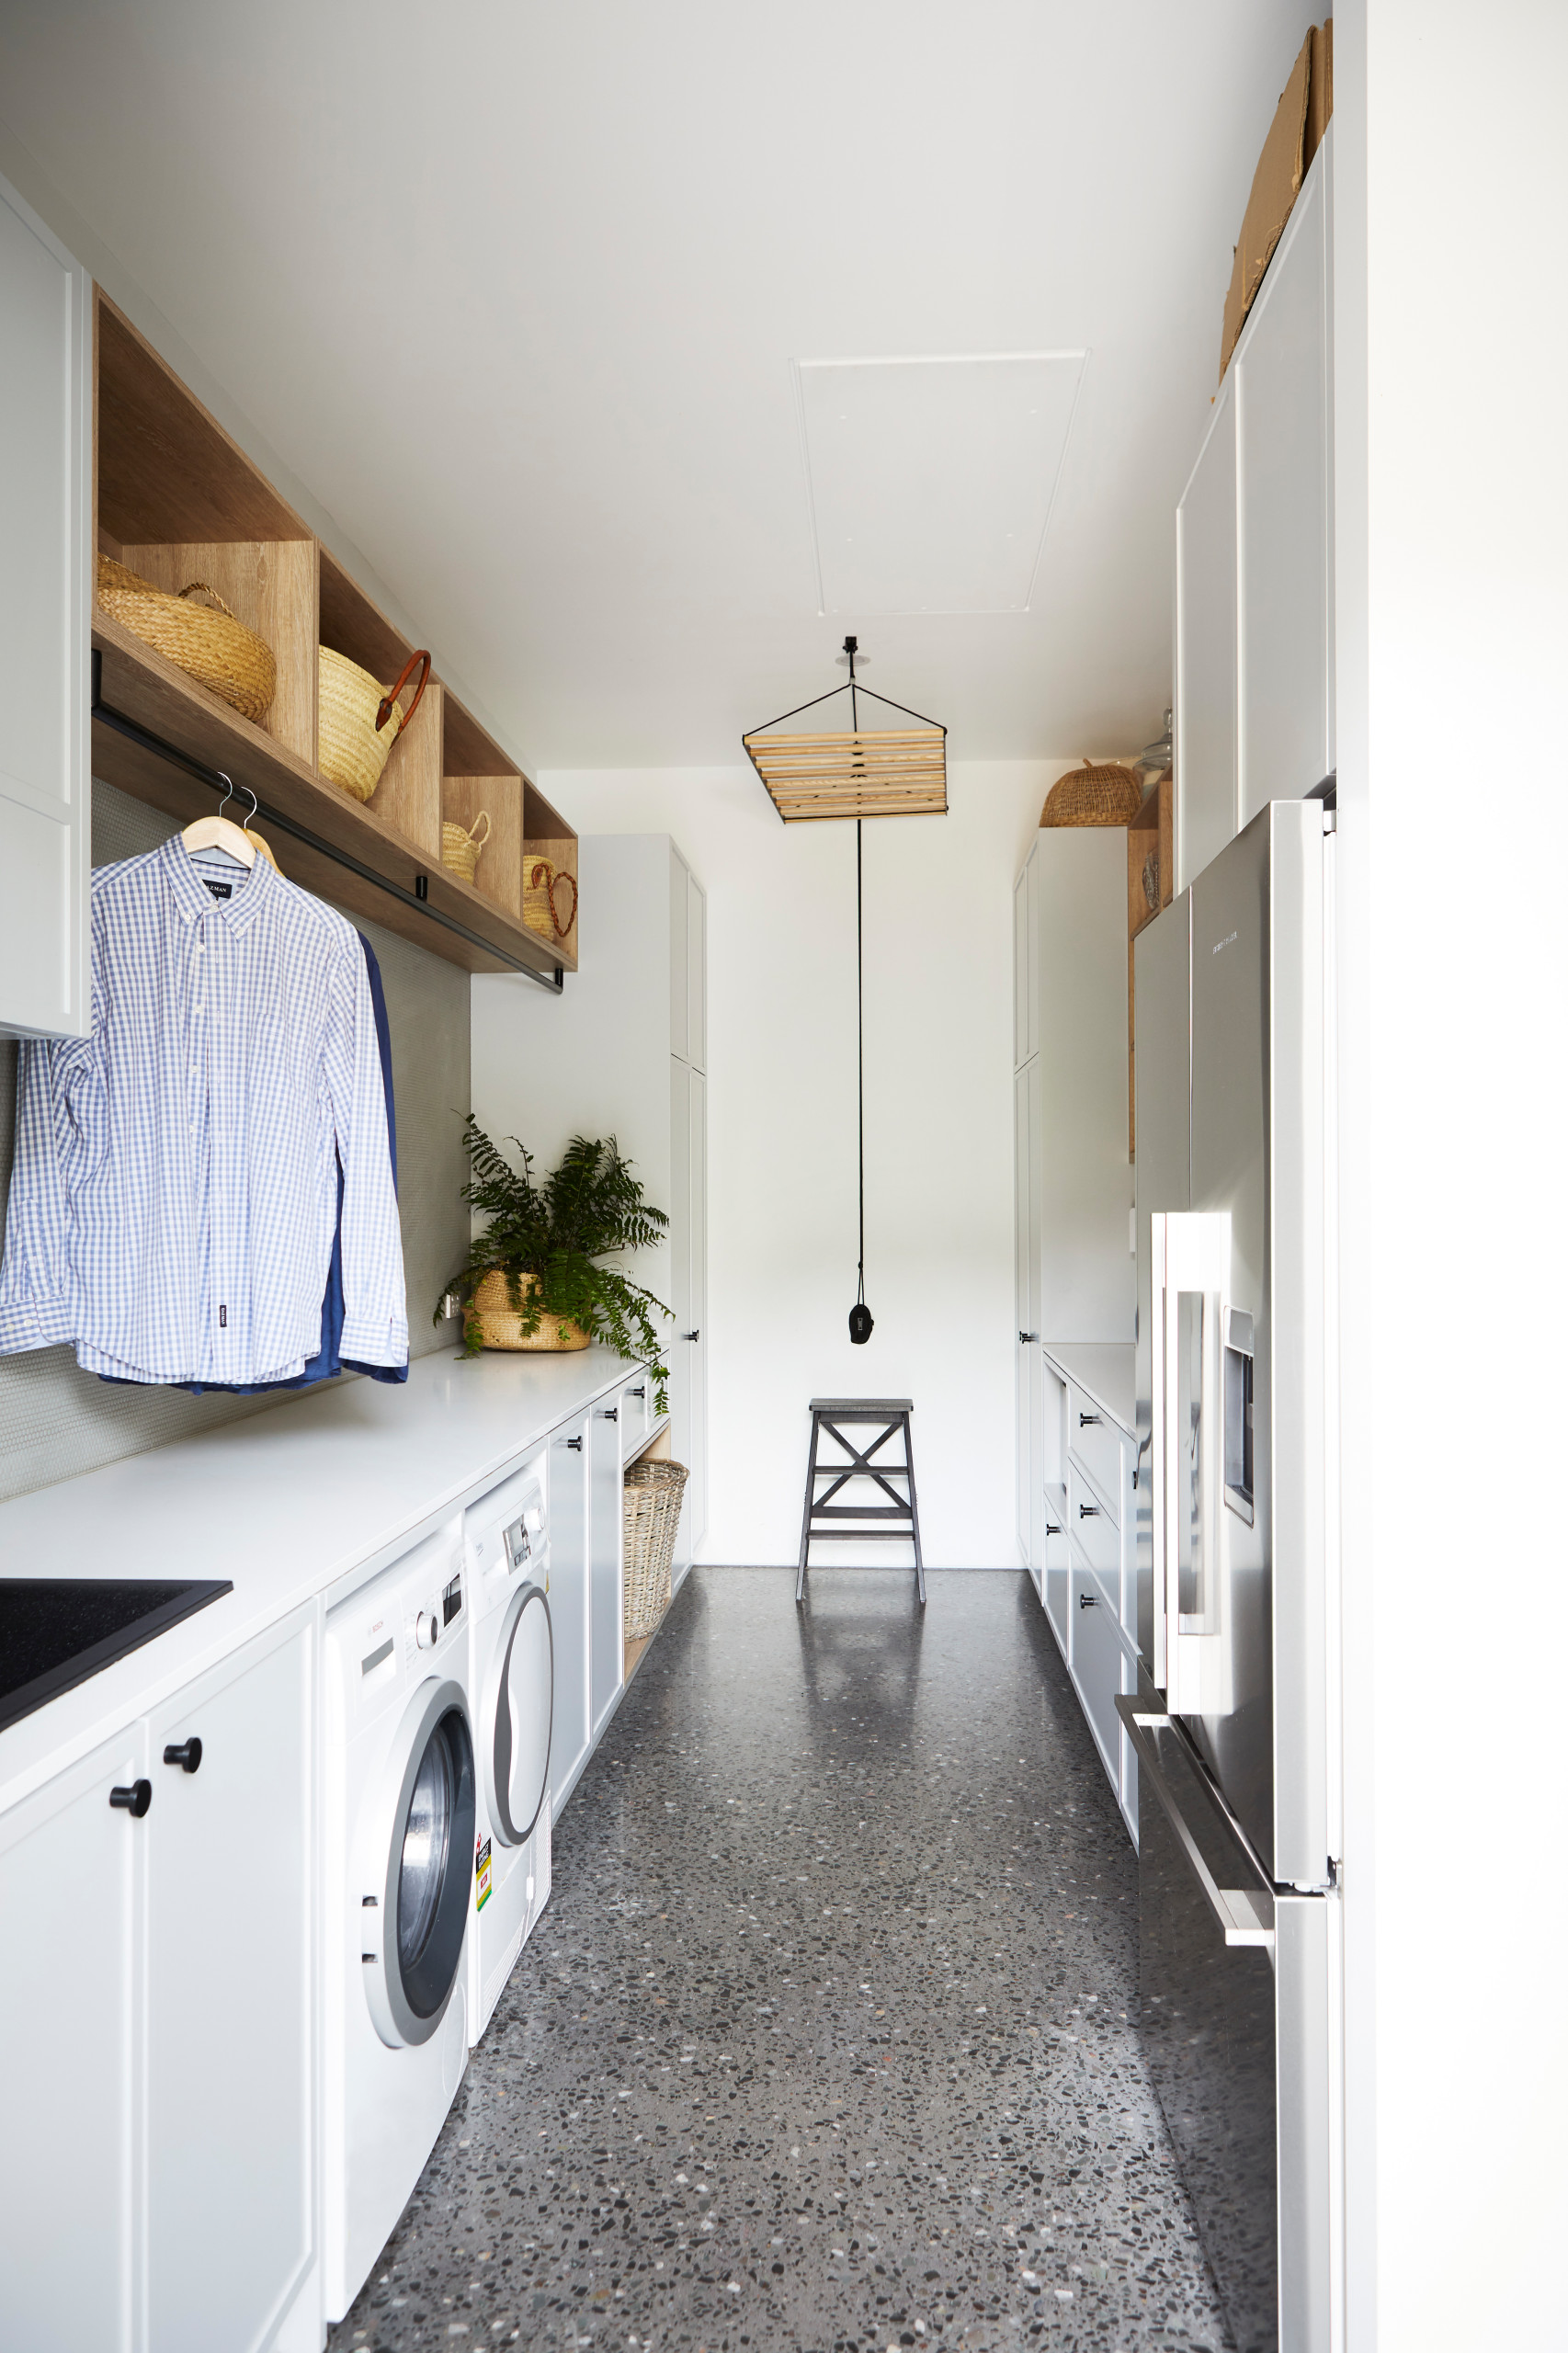 75 Beautiful Galley Laundry Room Pictures Ideas March 2021 Houzz